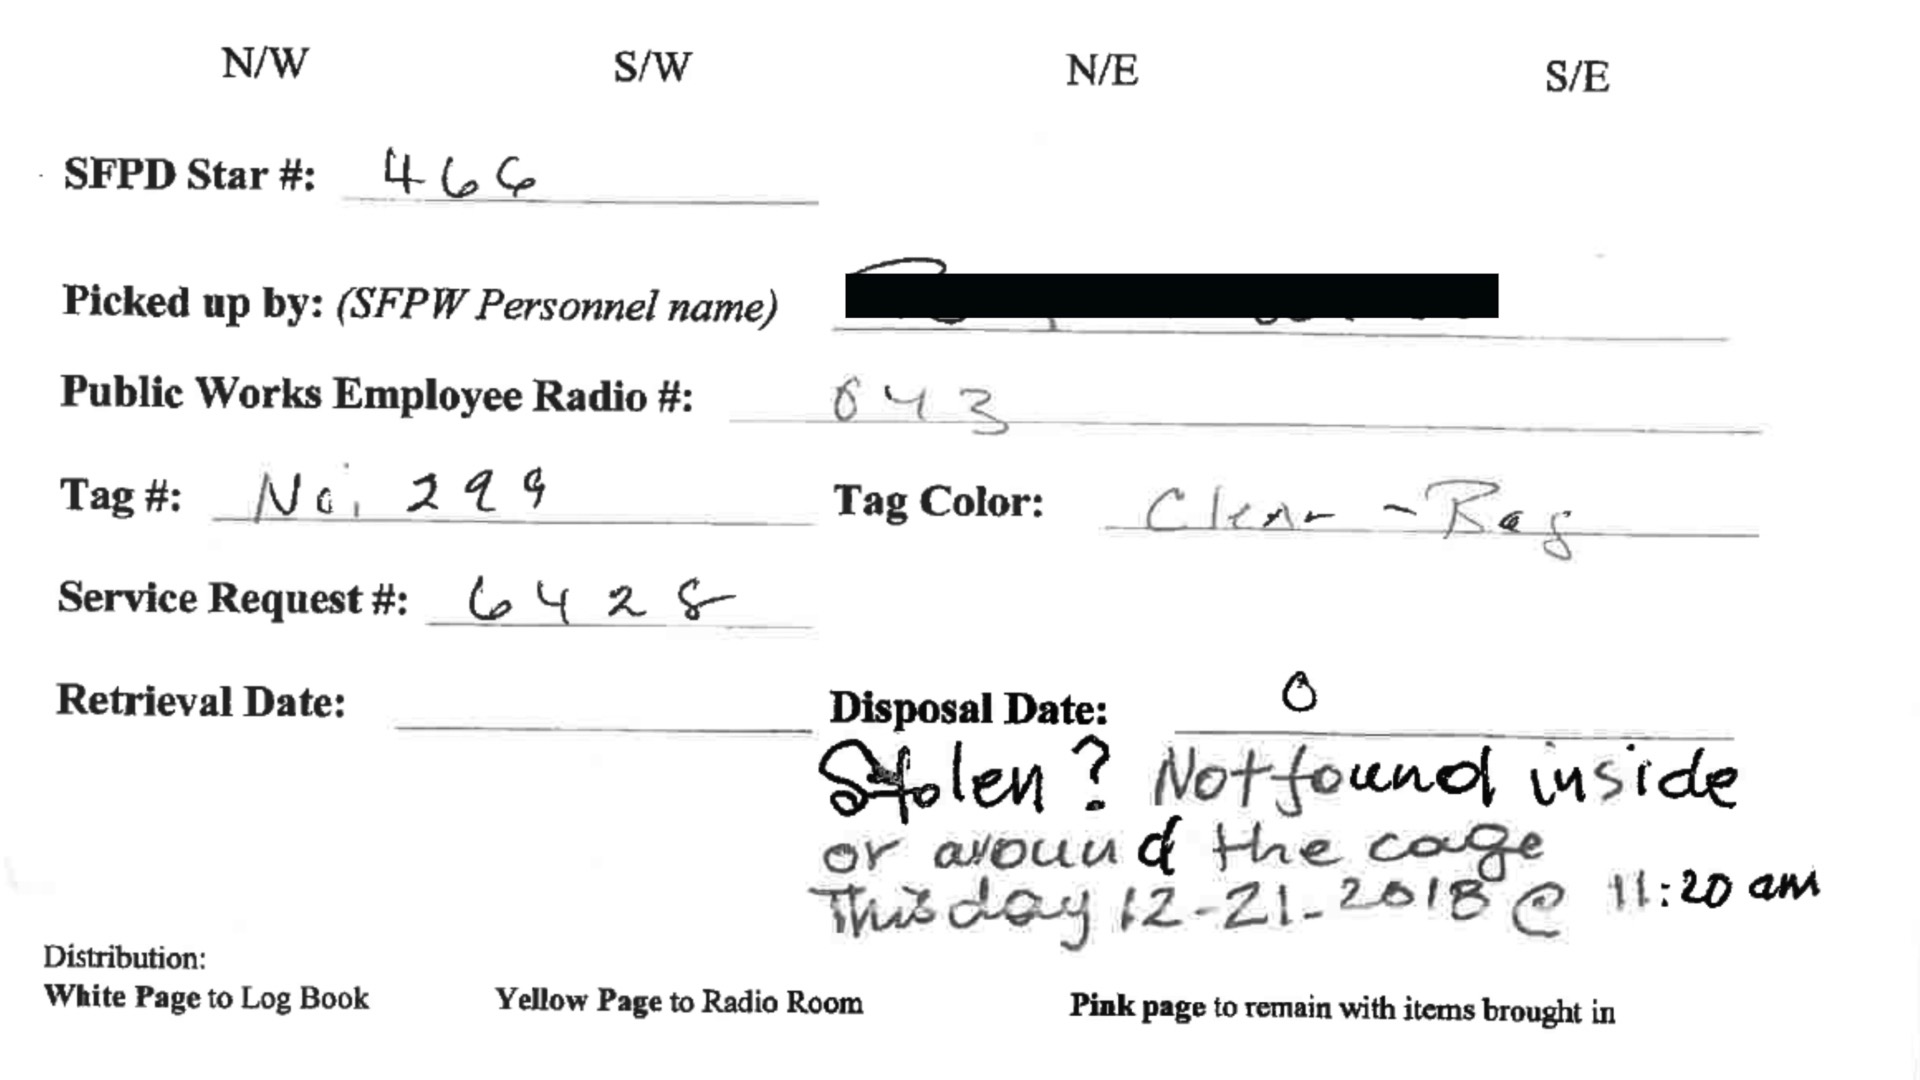 """DPW """"Bag and Tag""""/Homeless Property Information Record. Multiple forms are marked """"stolen"""" or """"not found"""", which means they are stolen while in the city's custody. 2018."""